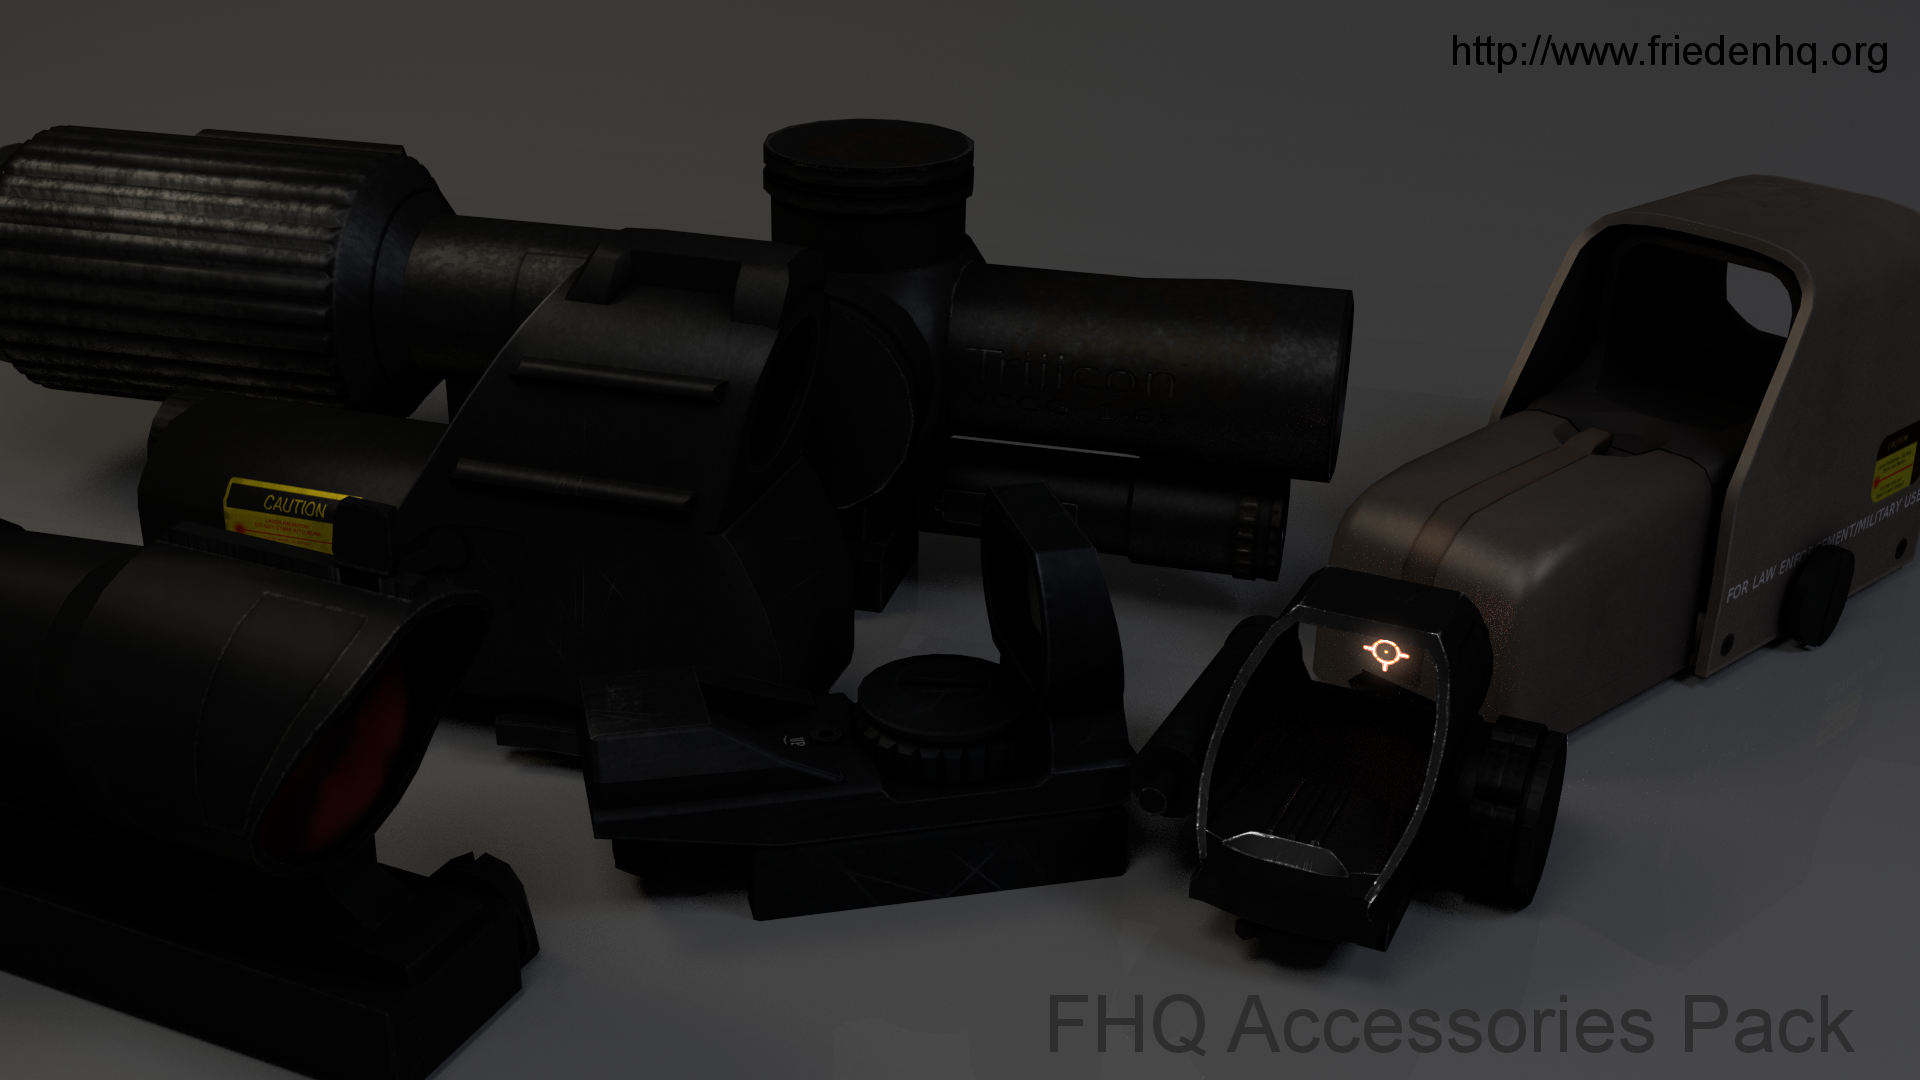 FHQ Accessories Pack updated to 1.7